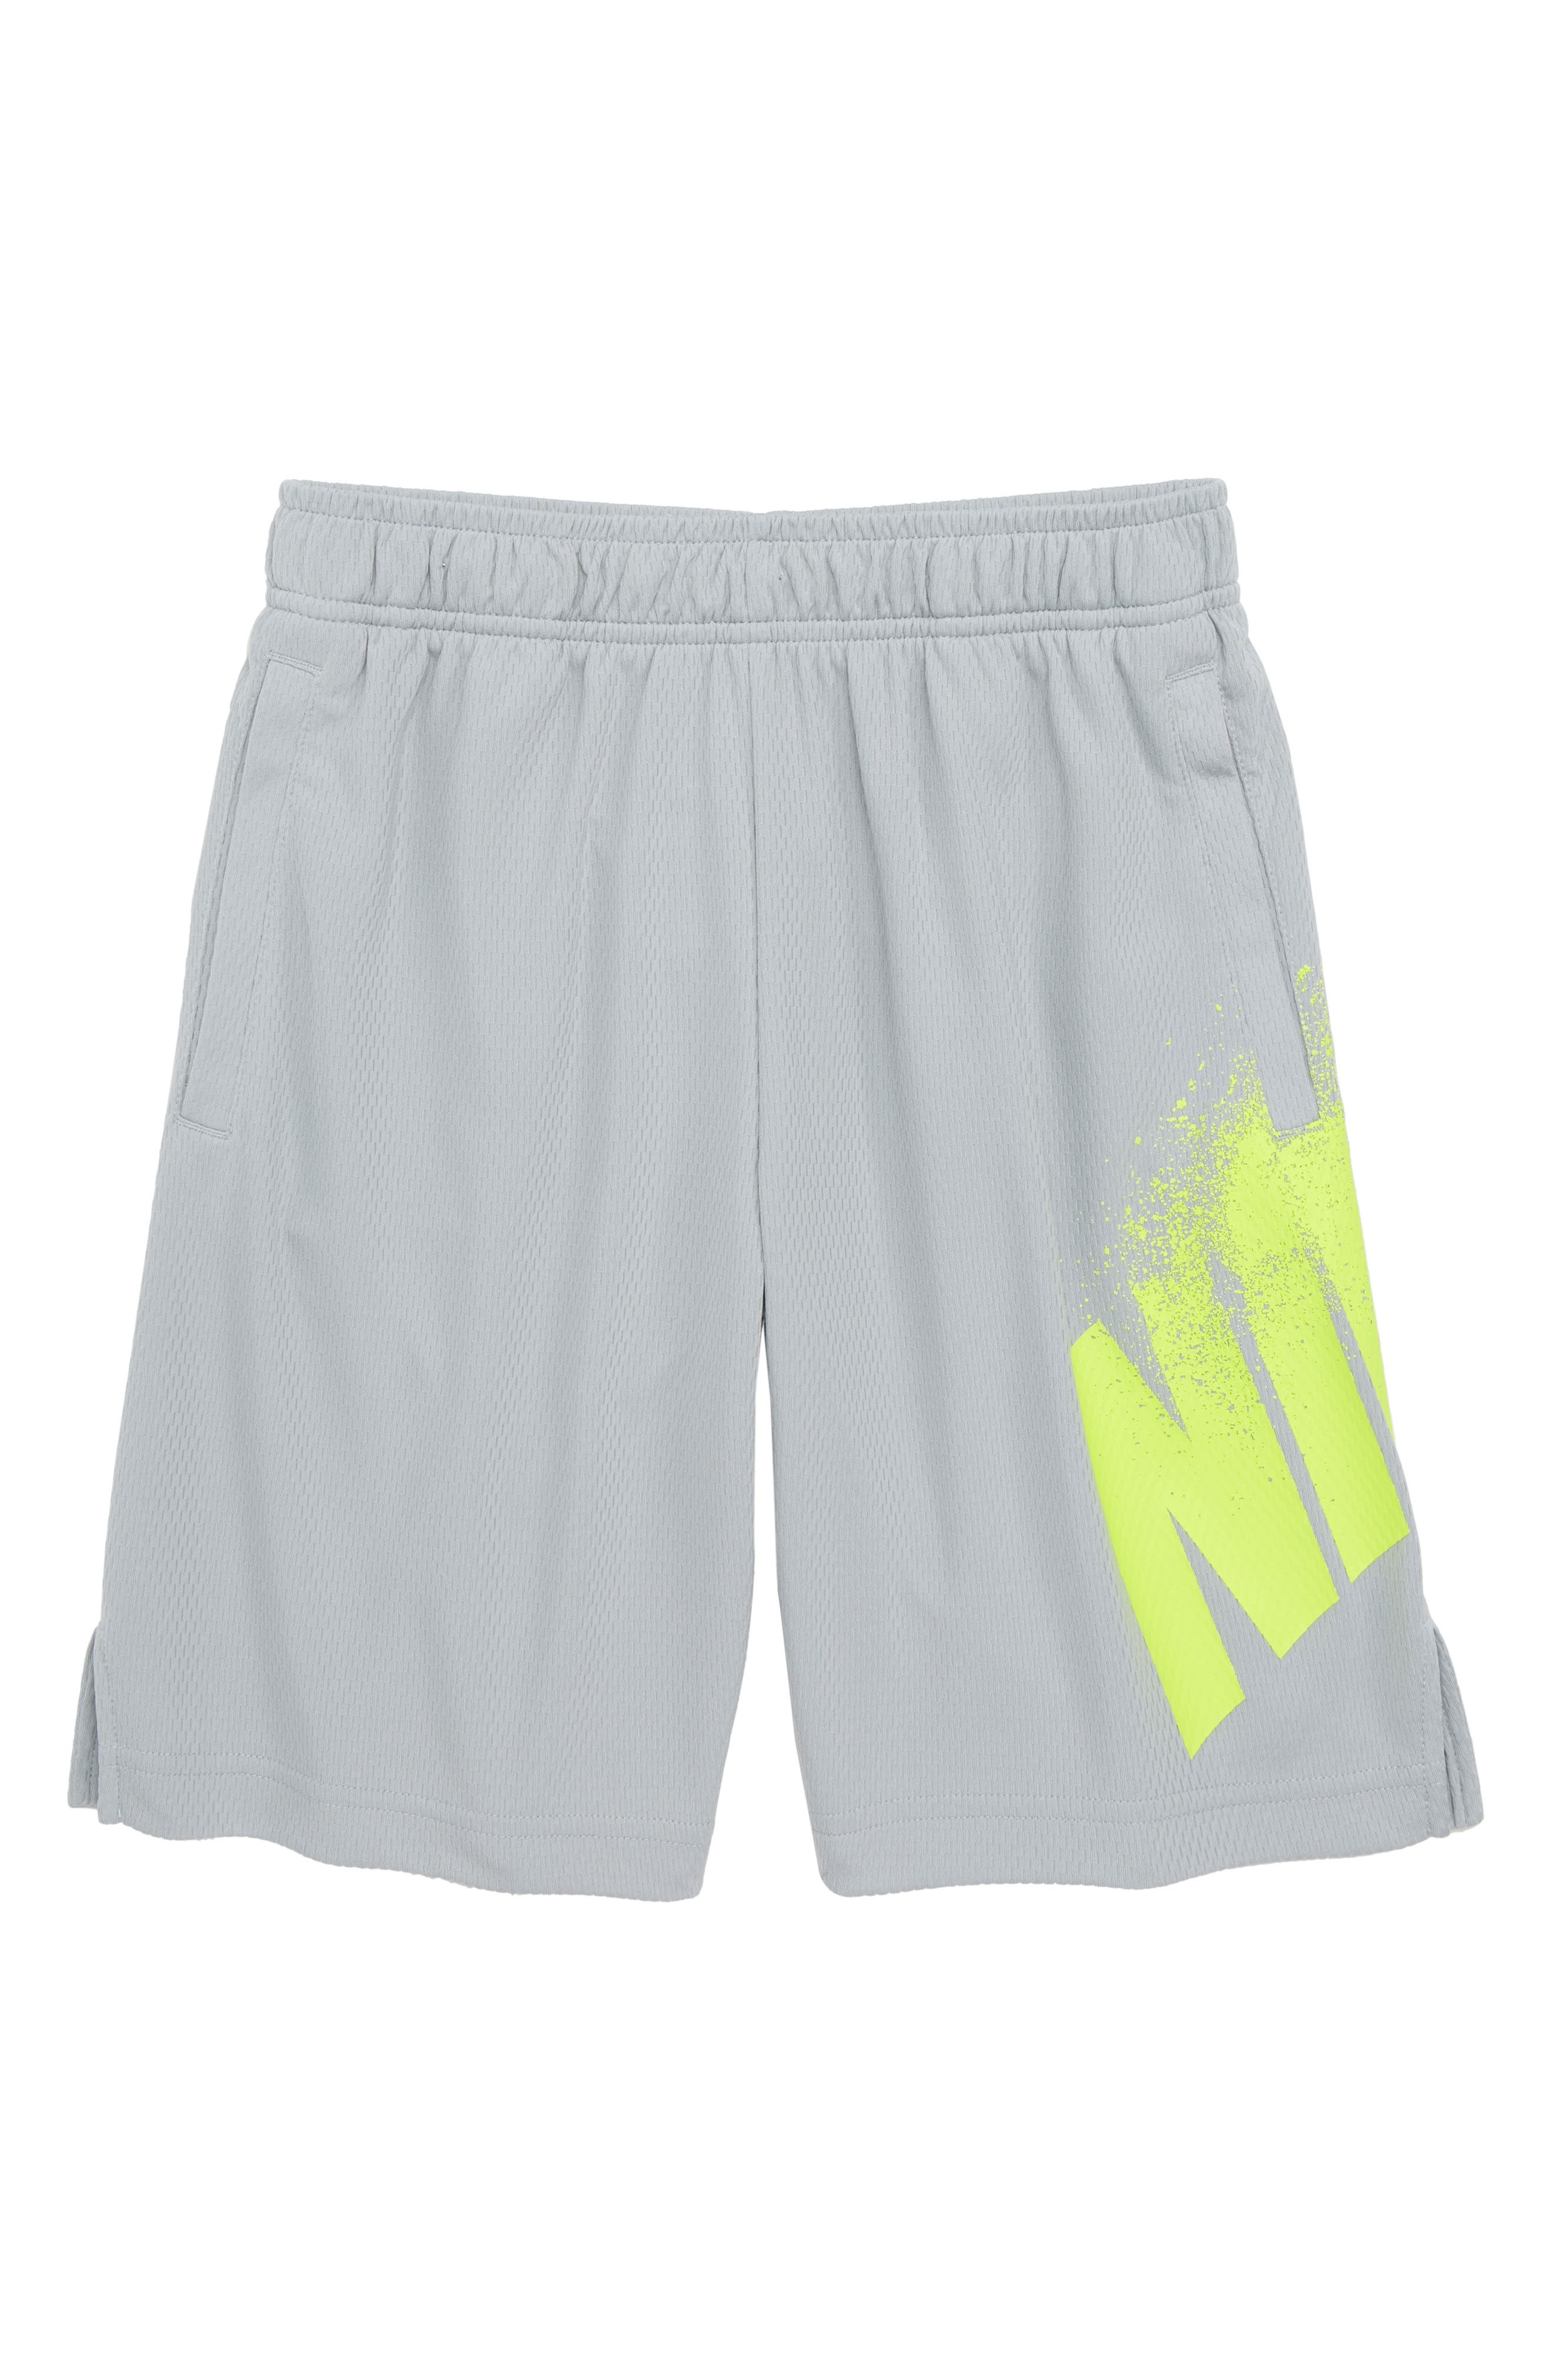 Dry GFX Athletic Shorts,                         Main,                         color, Wolf Grey/ Volt